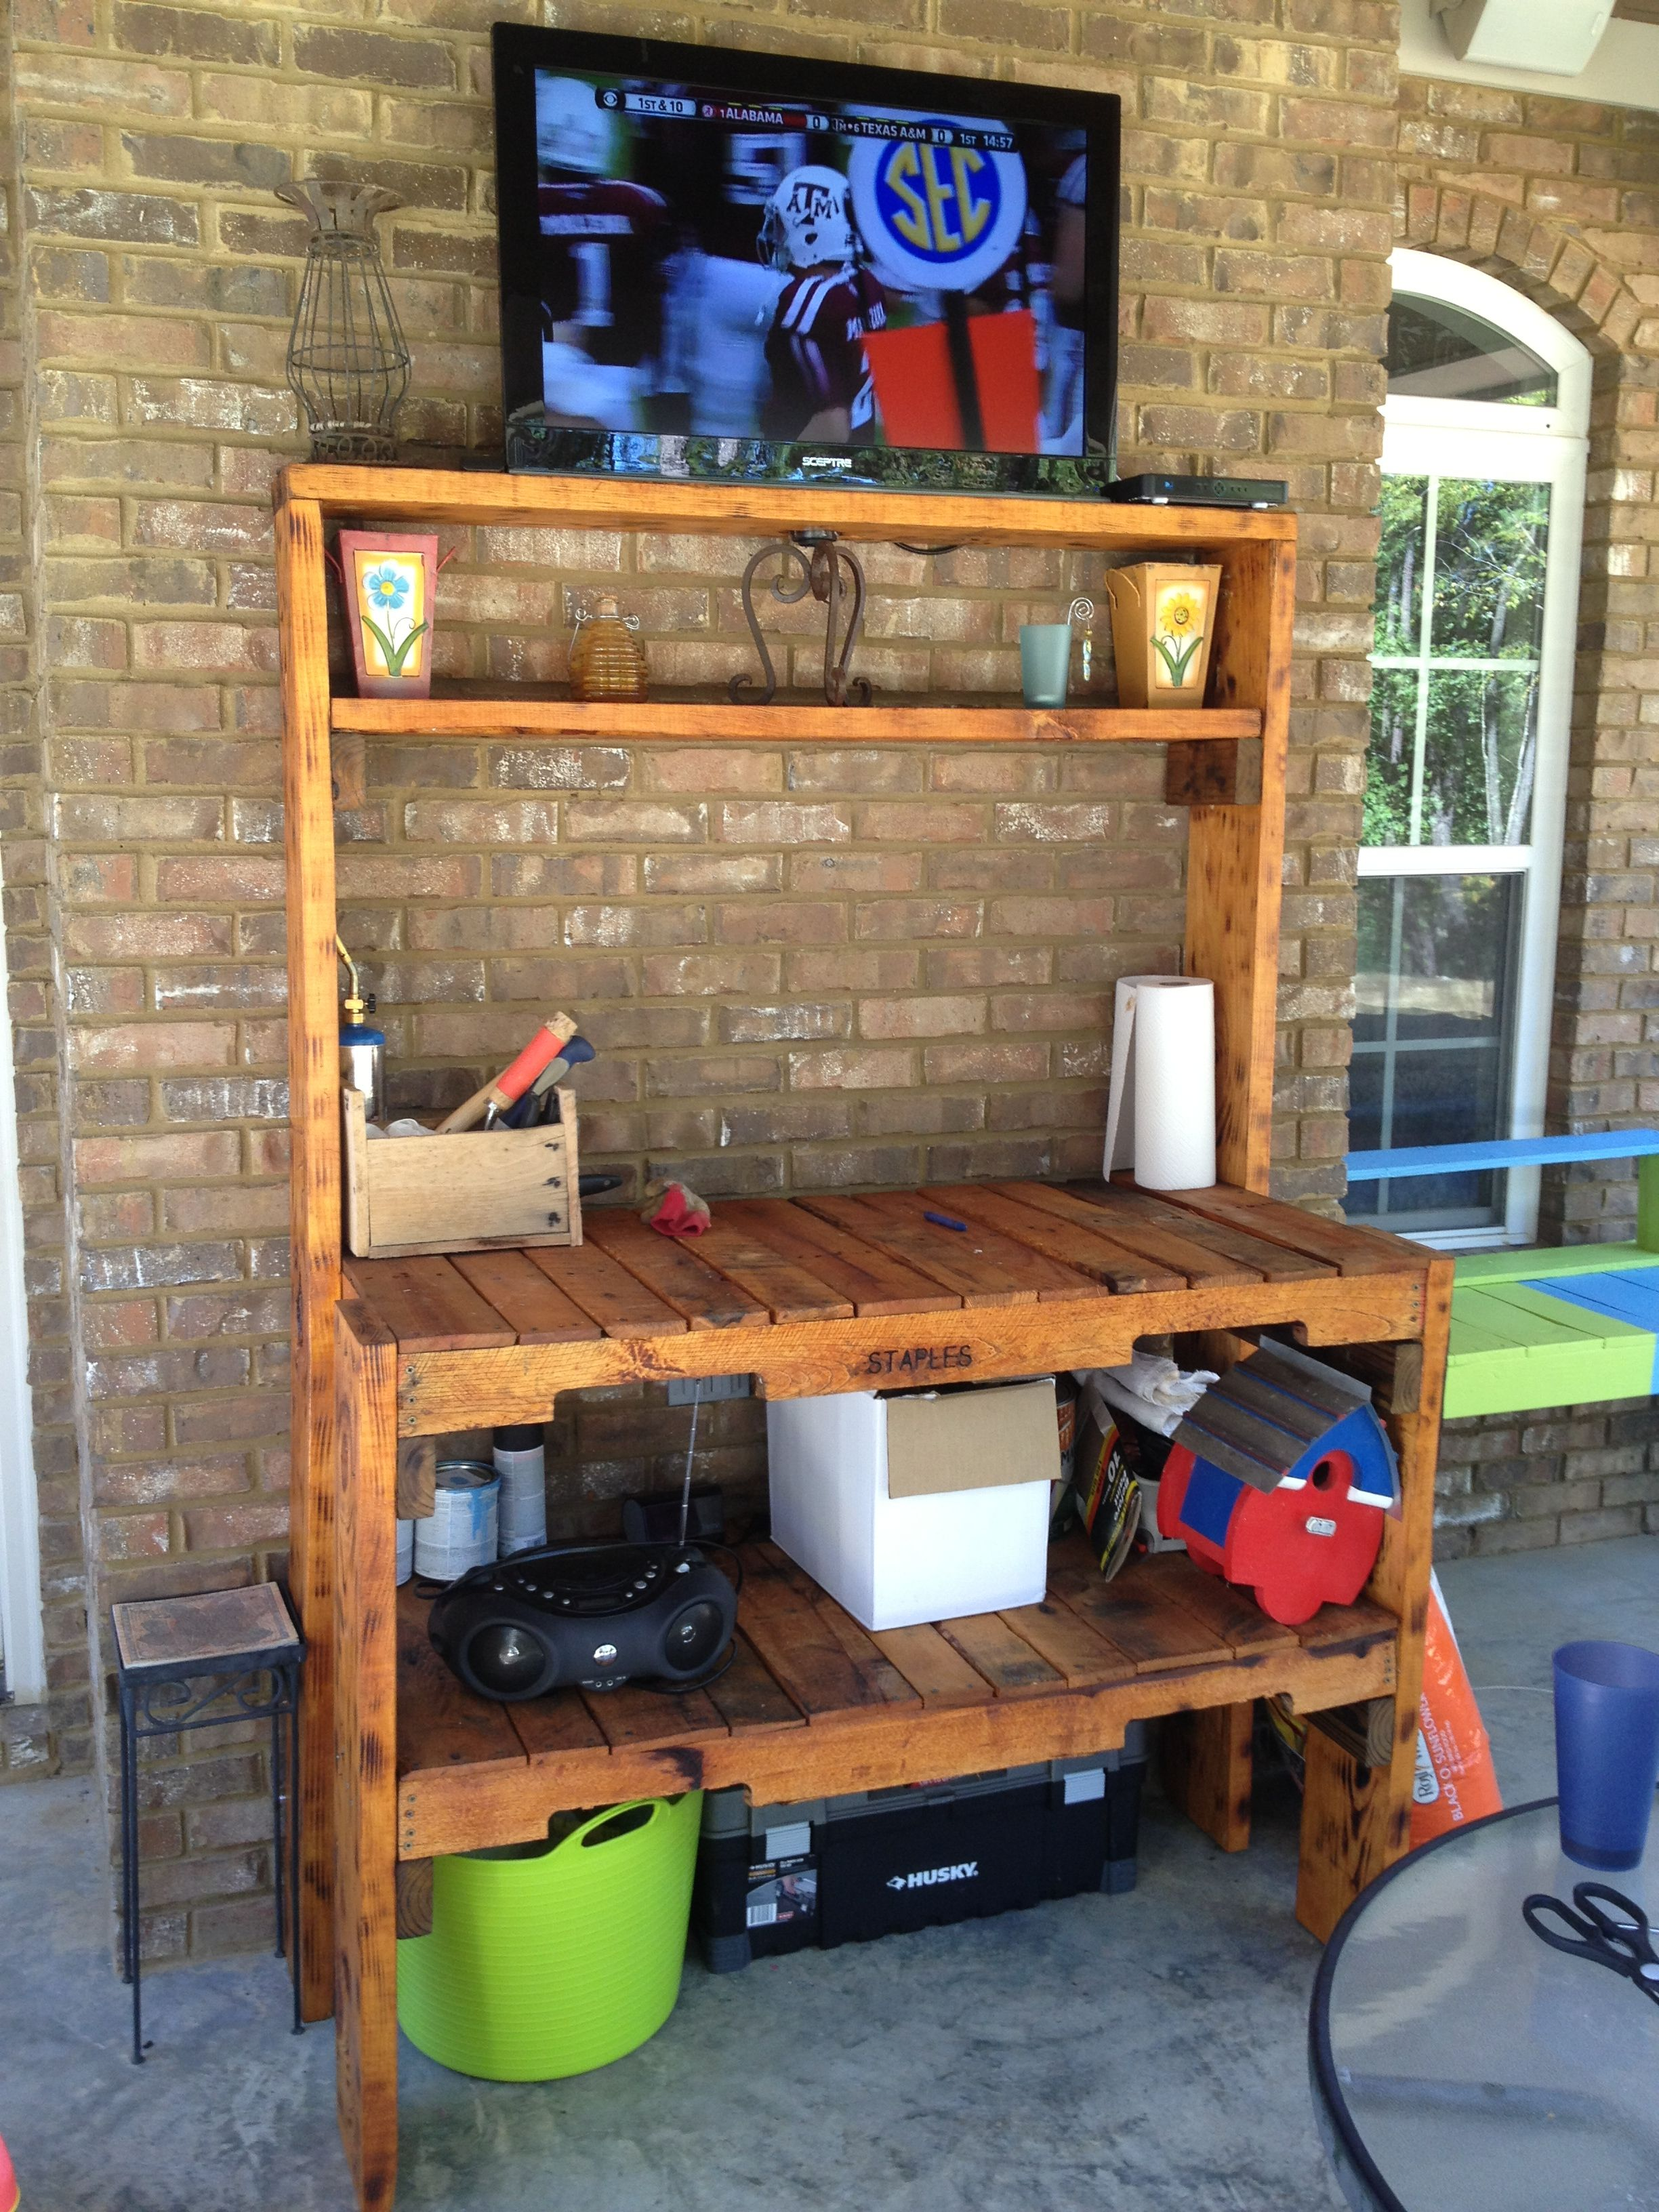 Potting Bench/Outdoor TV Stand made from pallets!  But with the bakers rack?